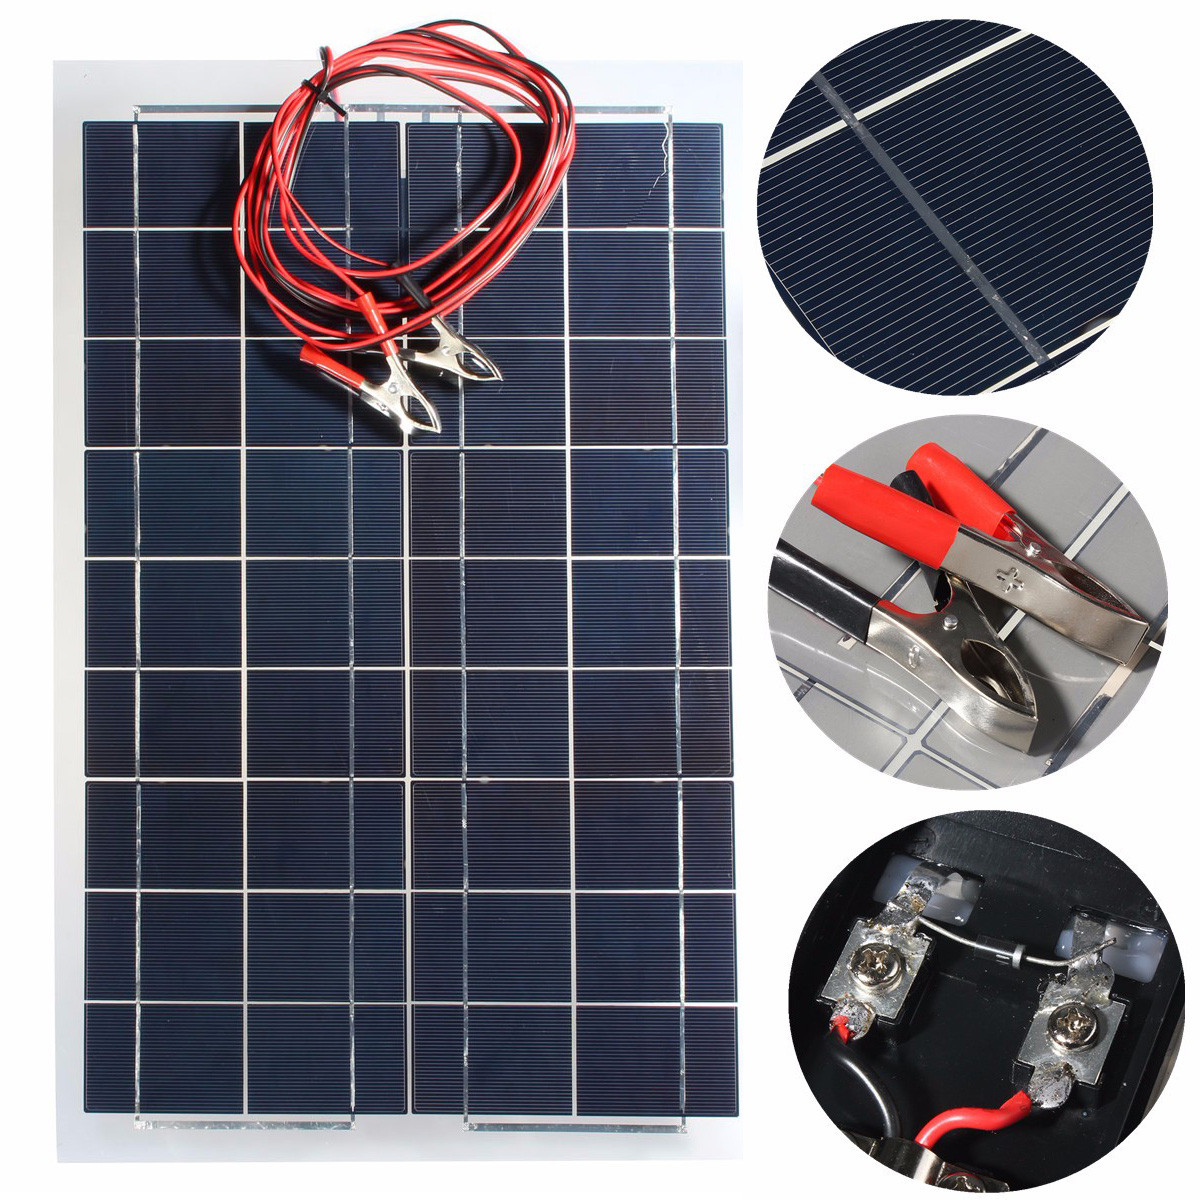 30W 18V Solar Panel PolyCrystalline Solar Cells DIY Battery Charger With Alligator Clip Wire For Car RV Boat Camping Energy 100w 12v monocrystalline solar panel for 12v battery rv boat car home solar power